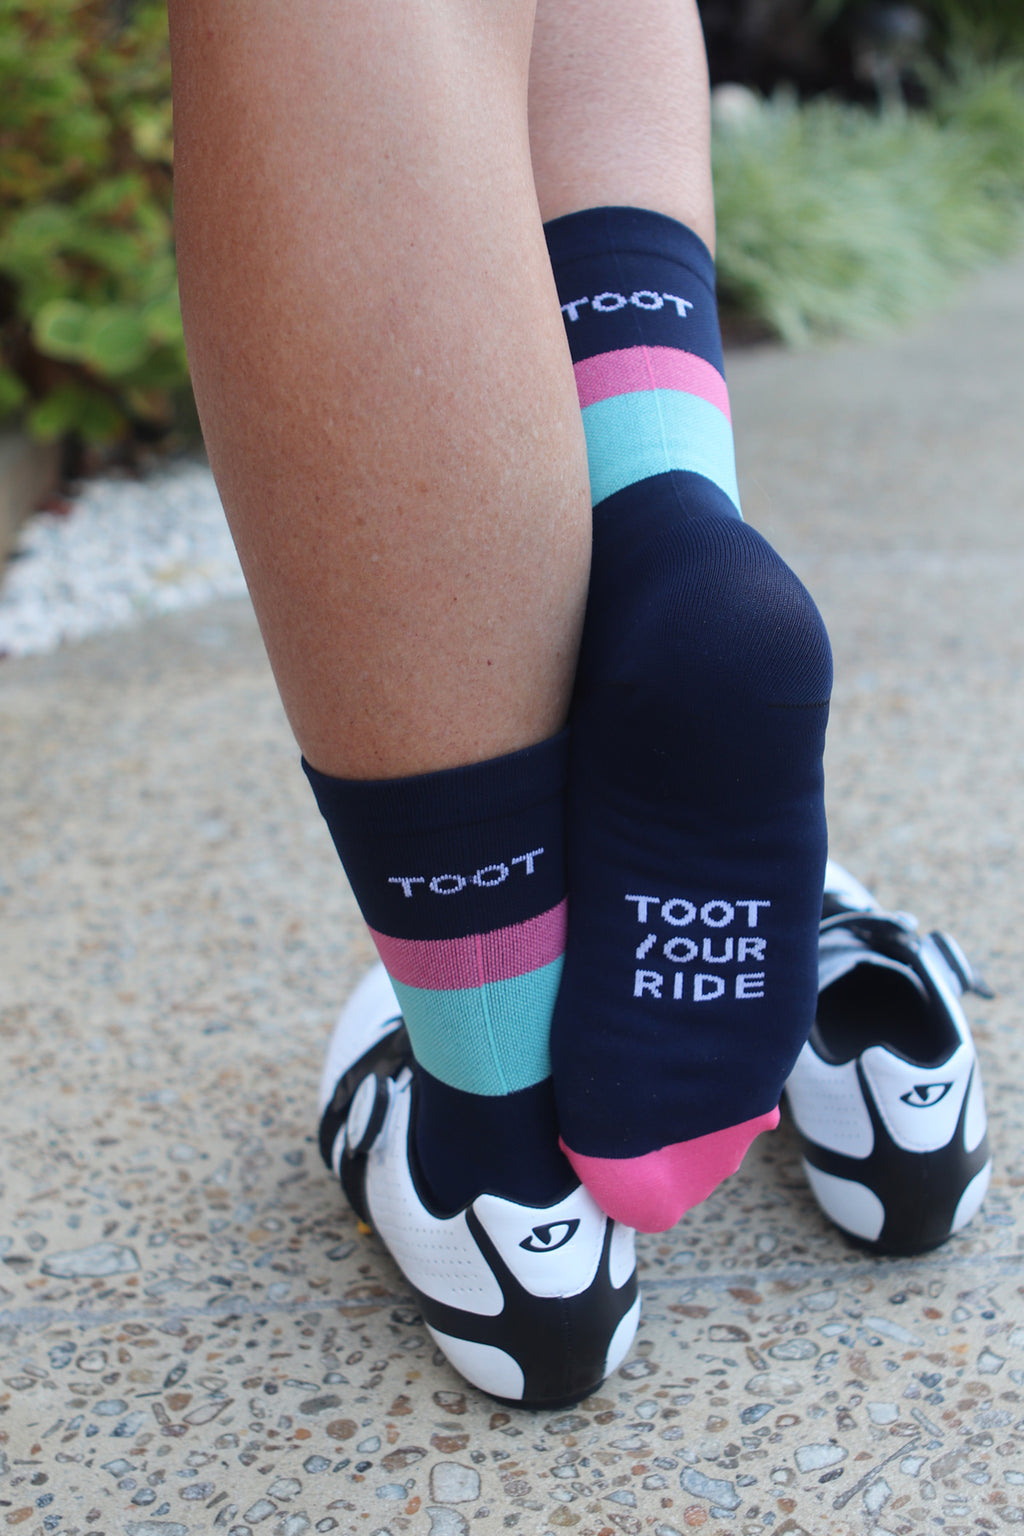 SUMMER WEIGHT CYCLING SOCKS - NAVY/MELON/TEAL